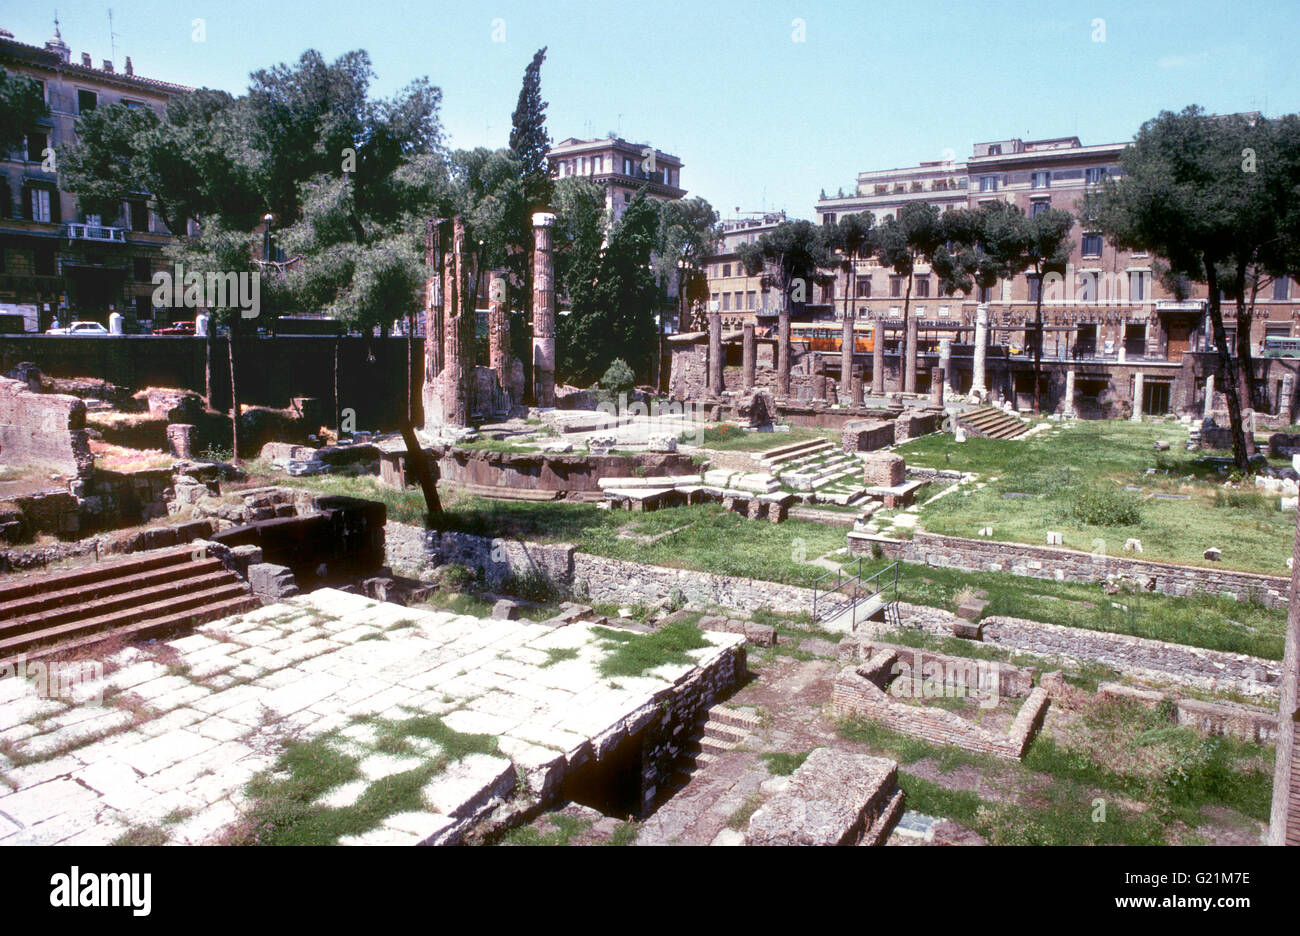 FORUM ROMANUM ruins from ancient times - Stock Image